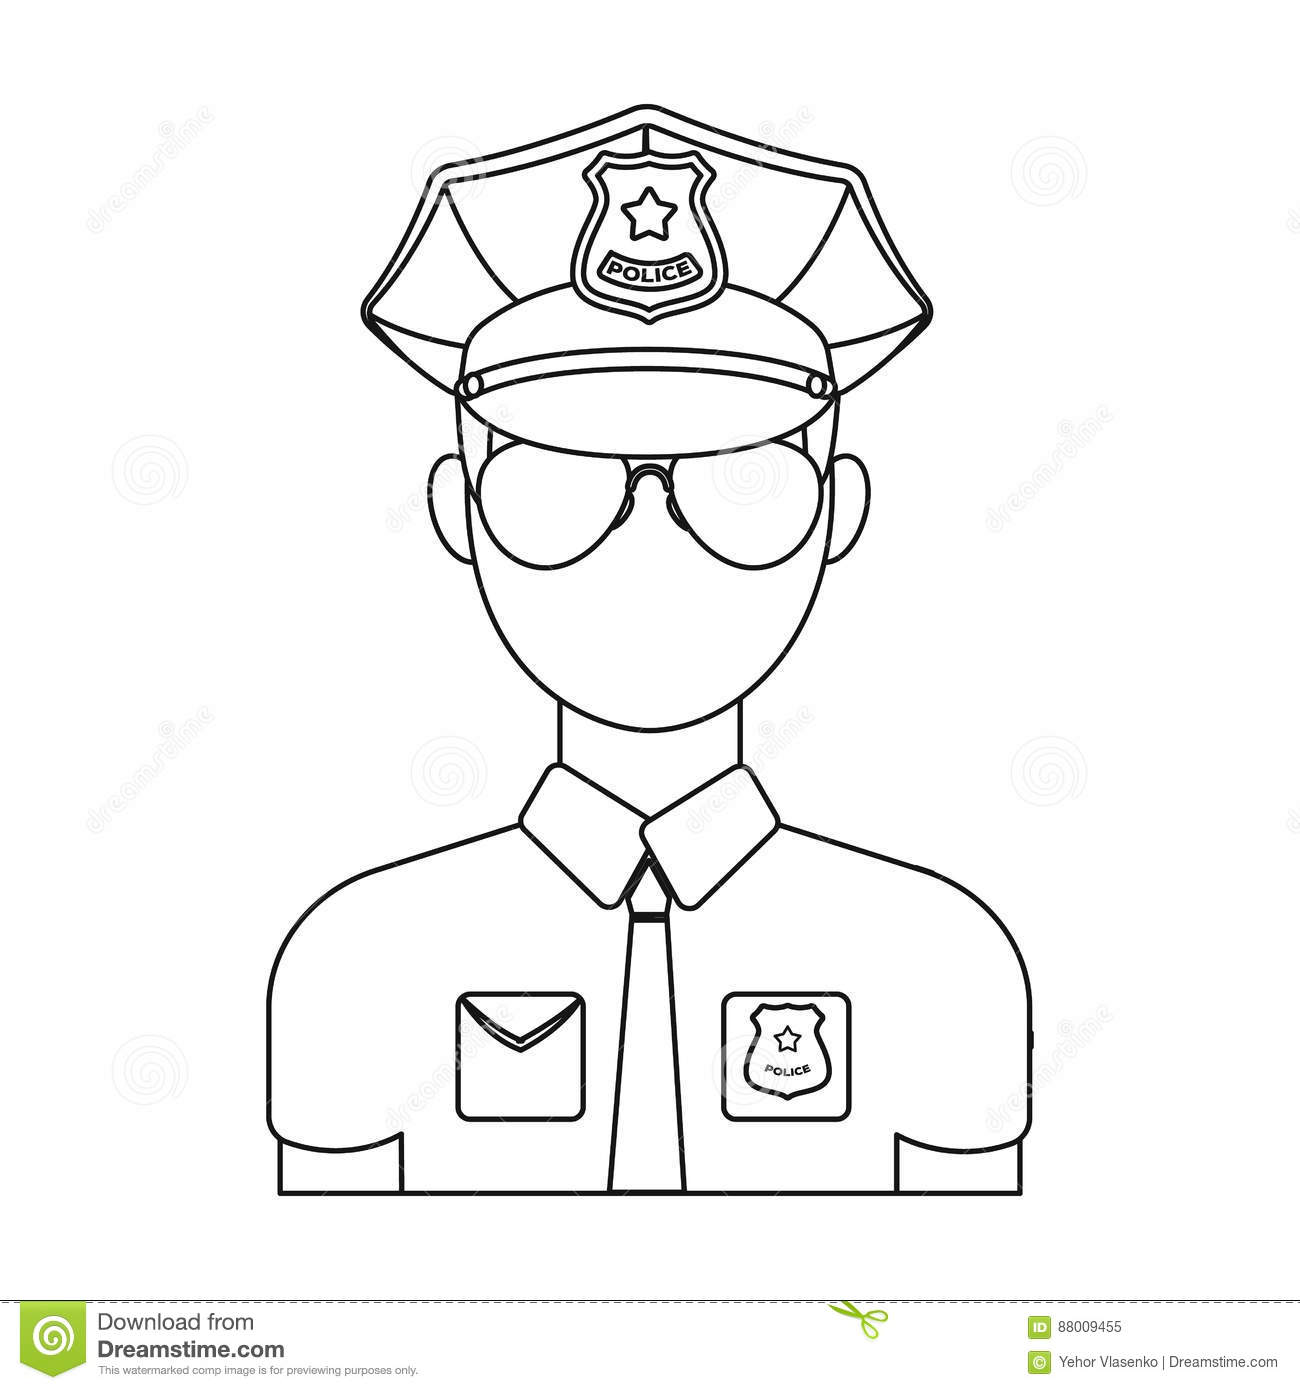 police officer icon in outline style isolated on white background